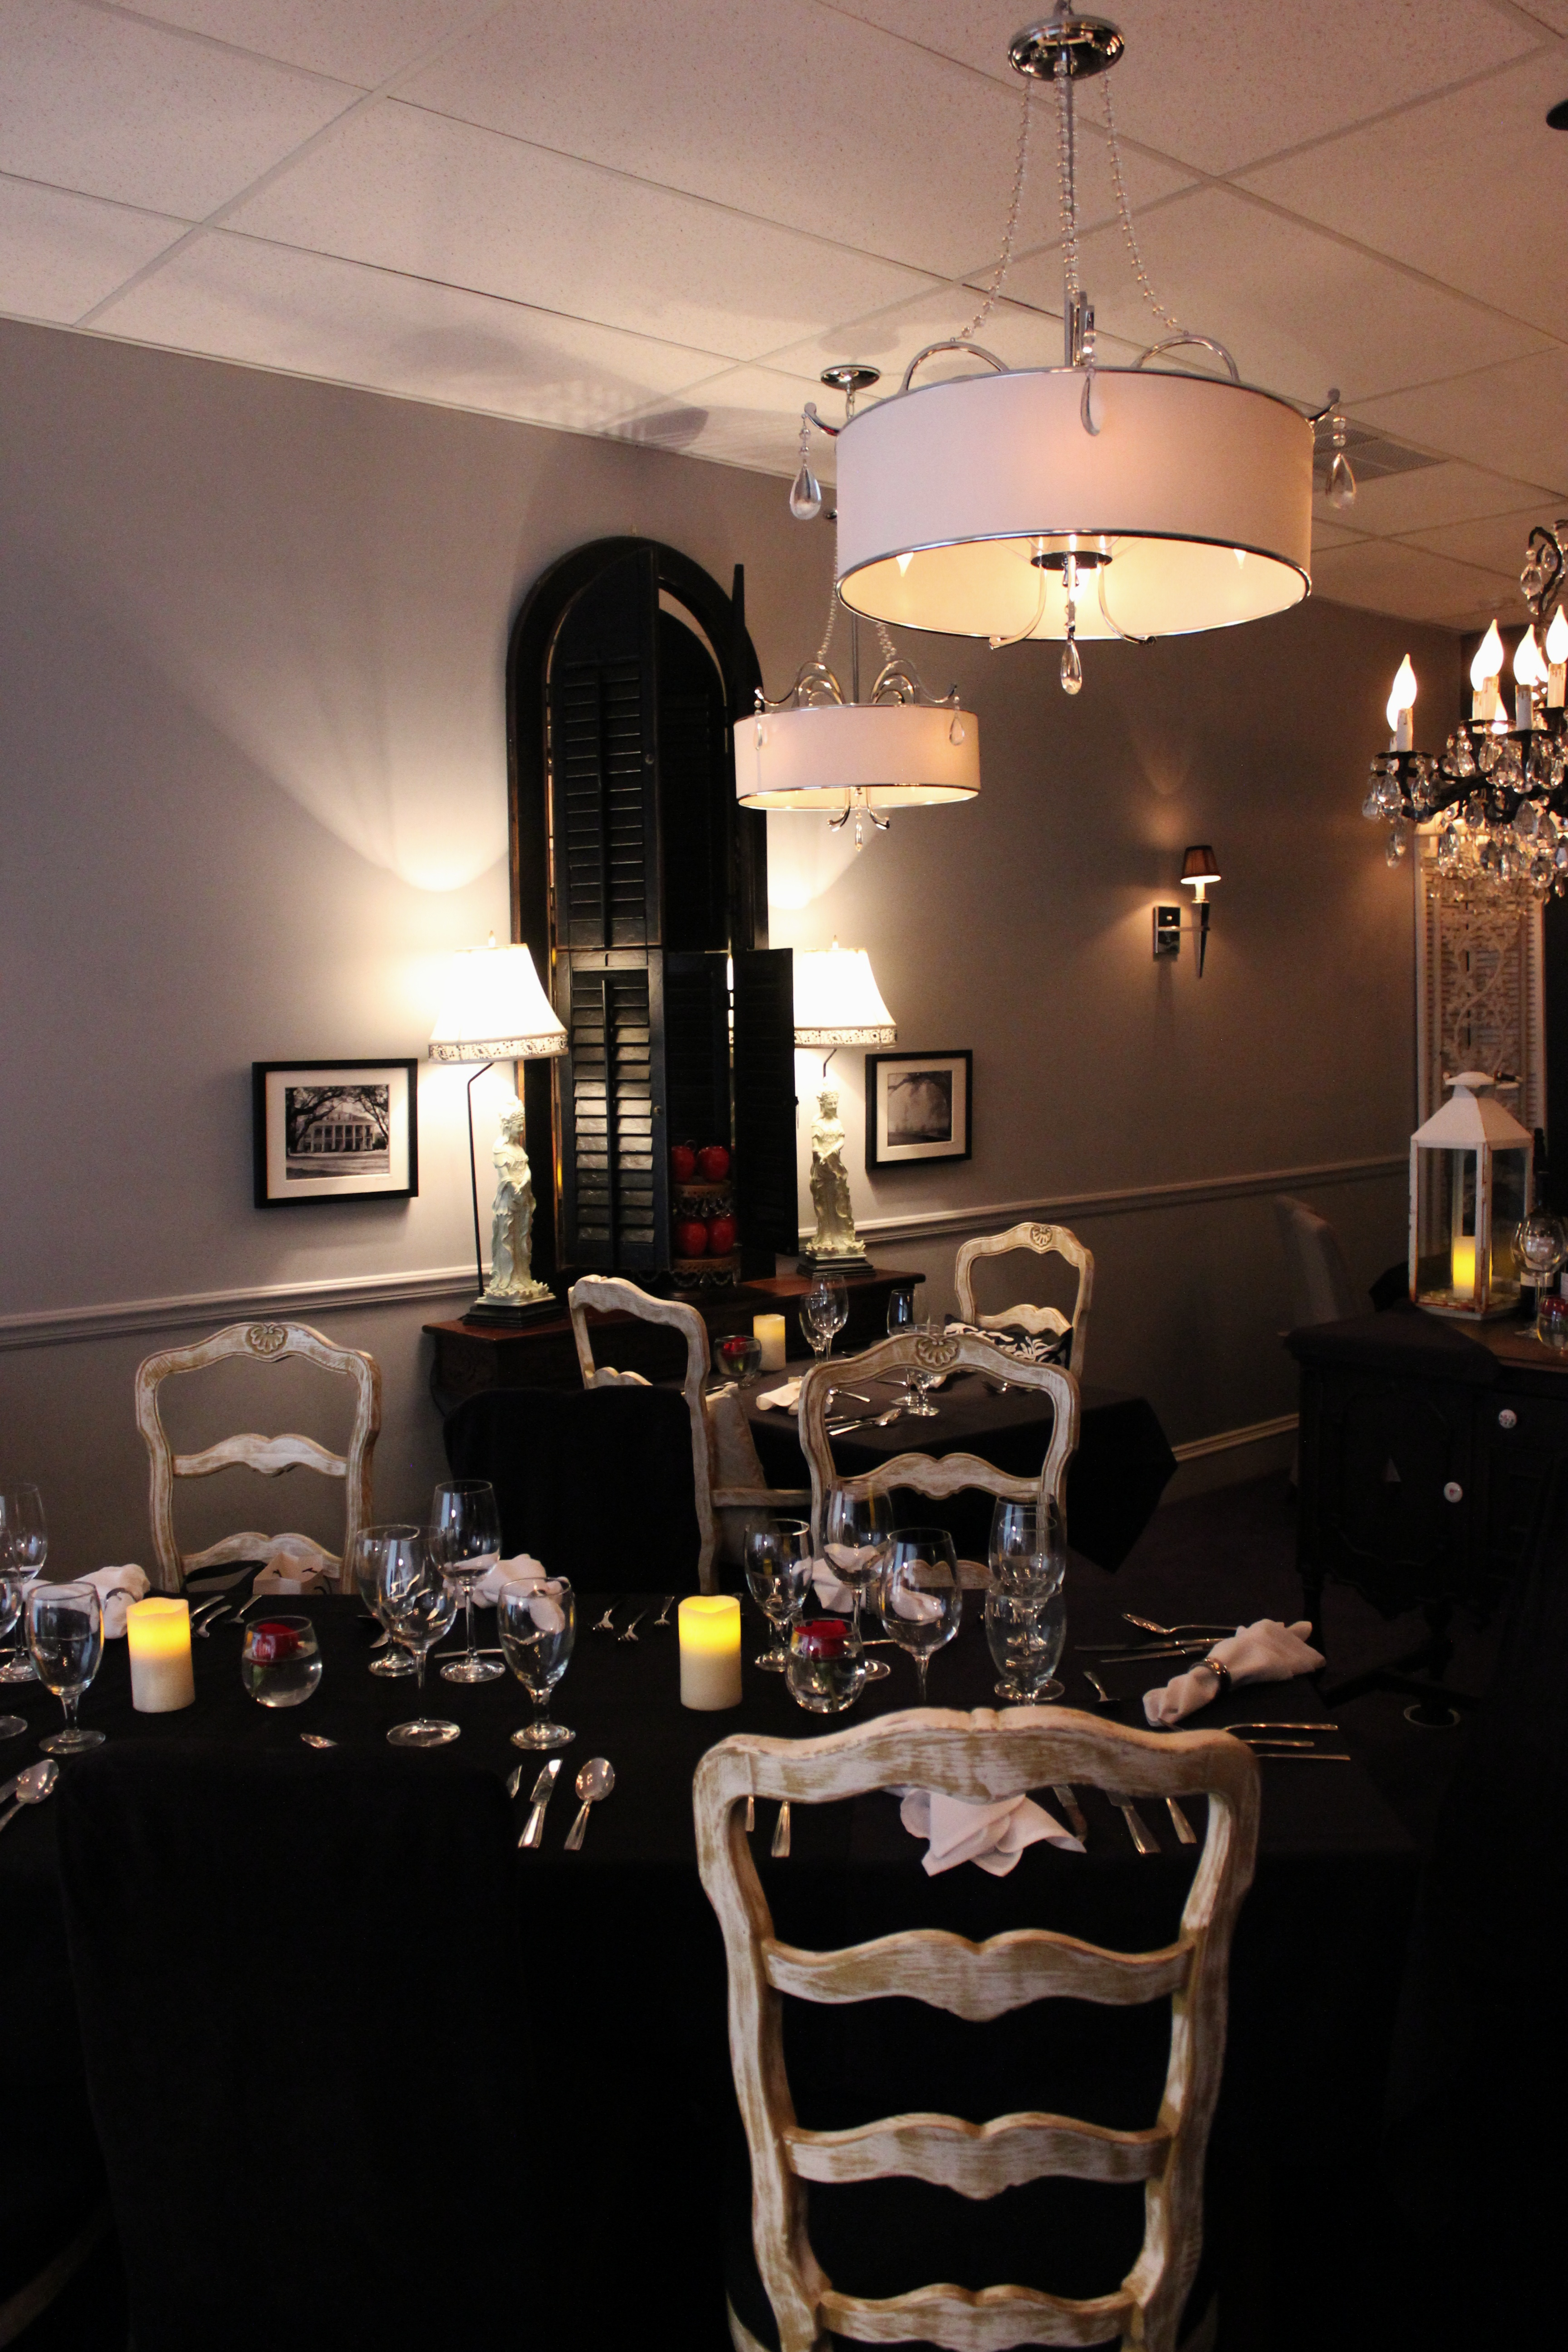 Special fer for Summer at Six Tables a Restaurant StaR in Boca